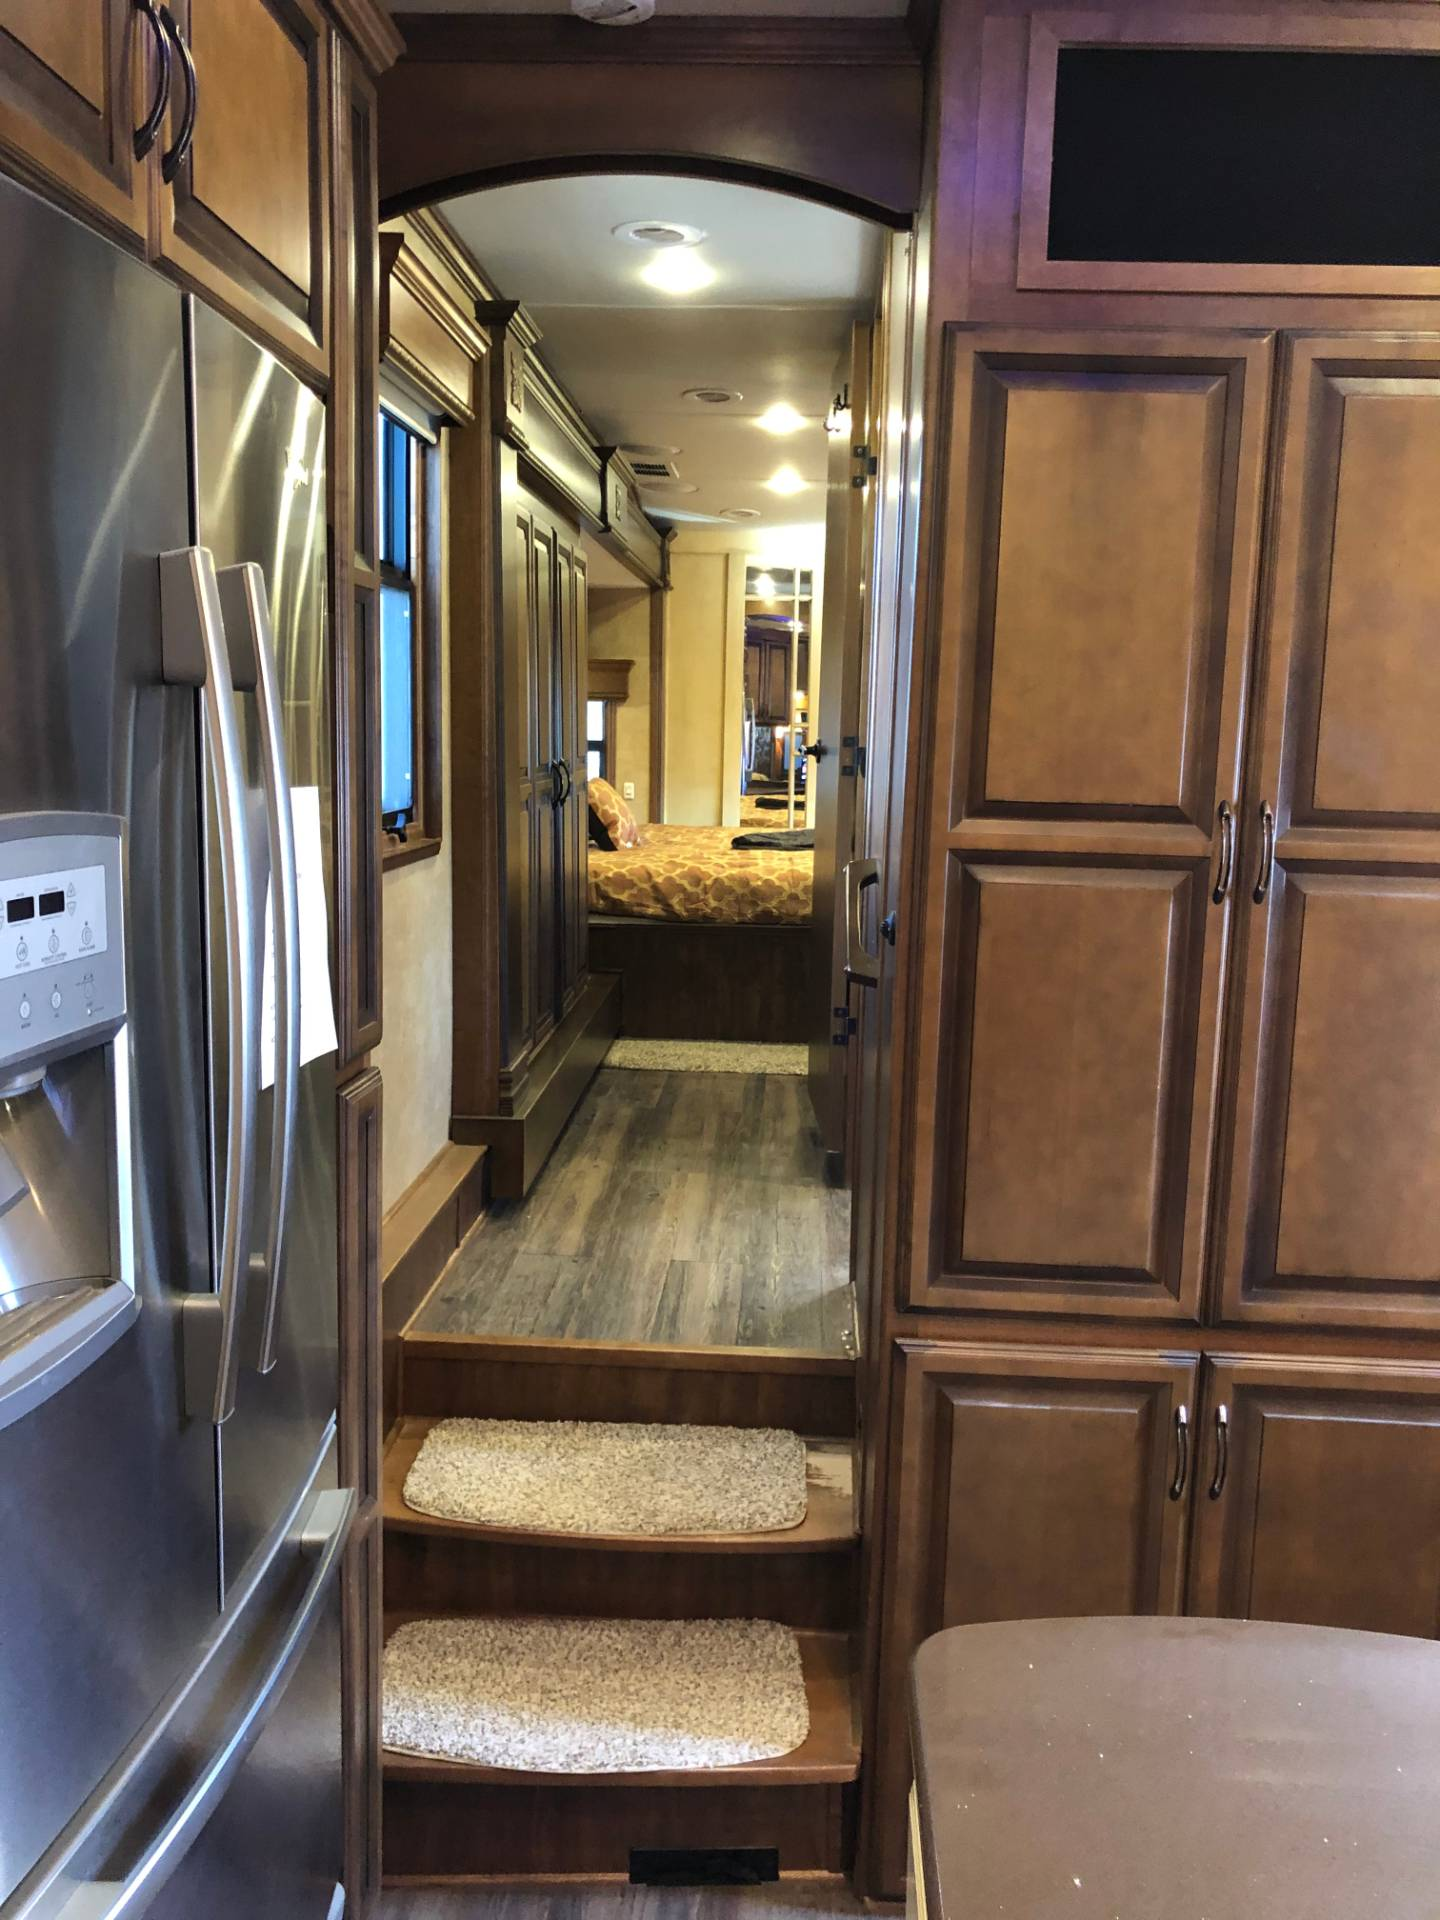 2014 DRV Mobile D Suites 39RESB3 in Wolfforth, Texas - Photo 23